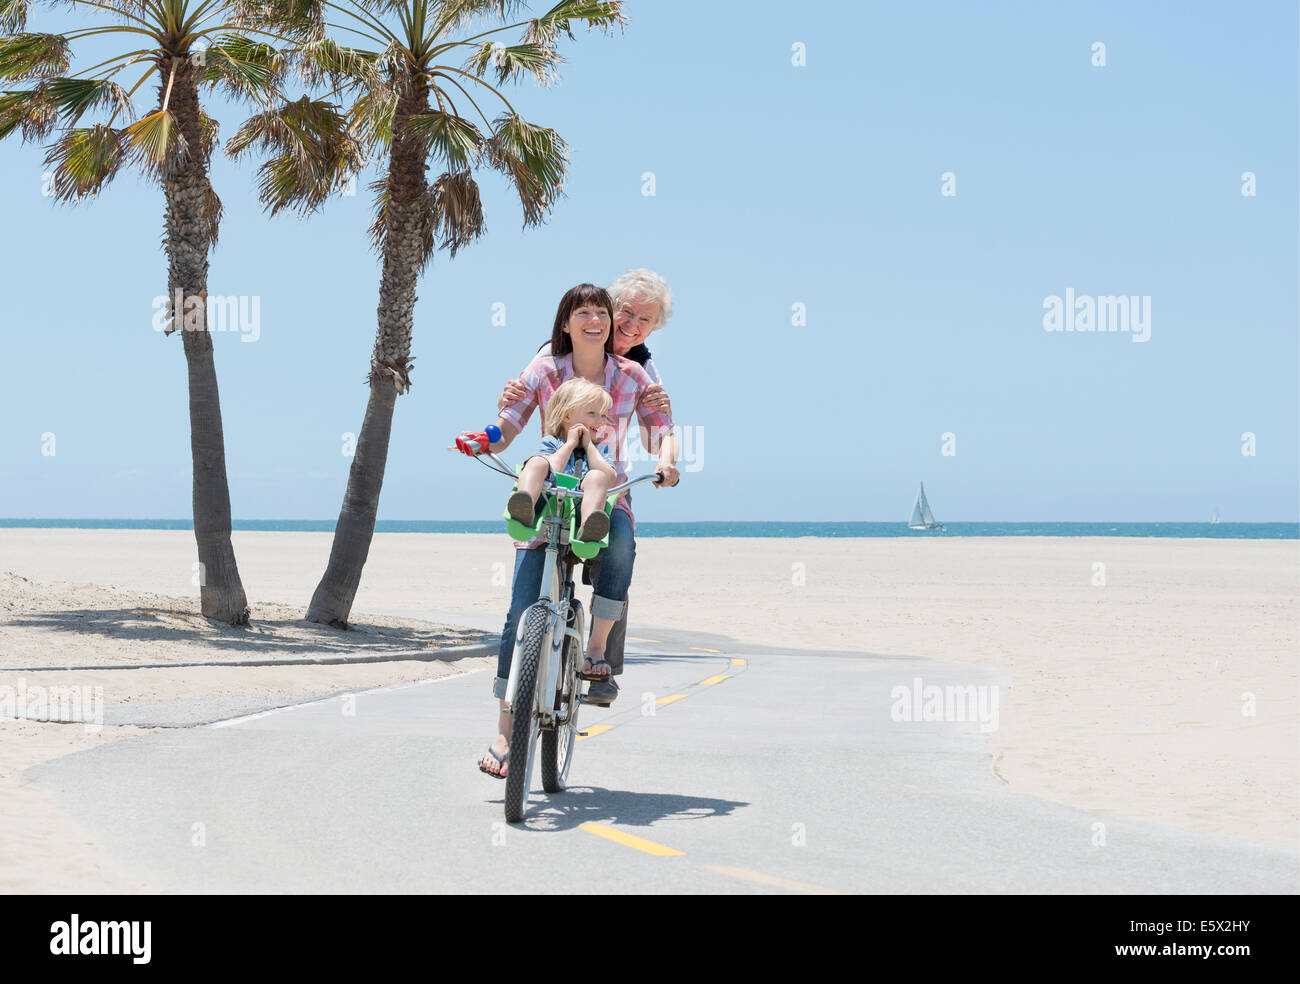 Mother, daughter and grandson on one bicycle, Venice Beach, California, USA - Stock Image